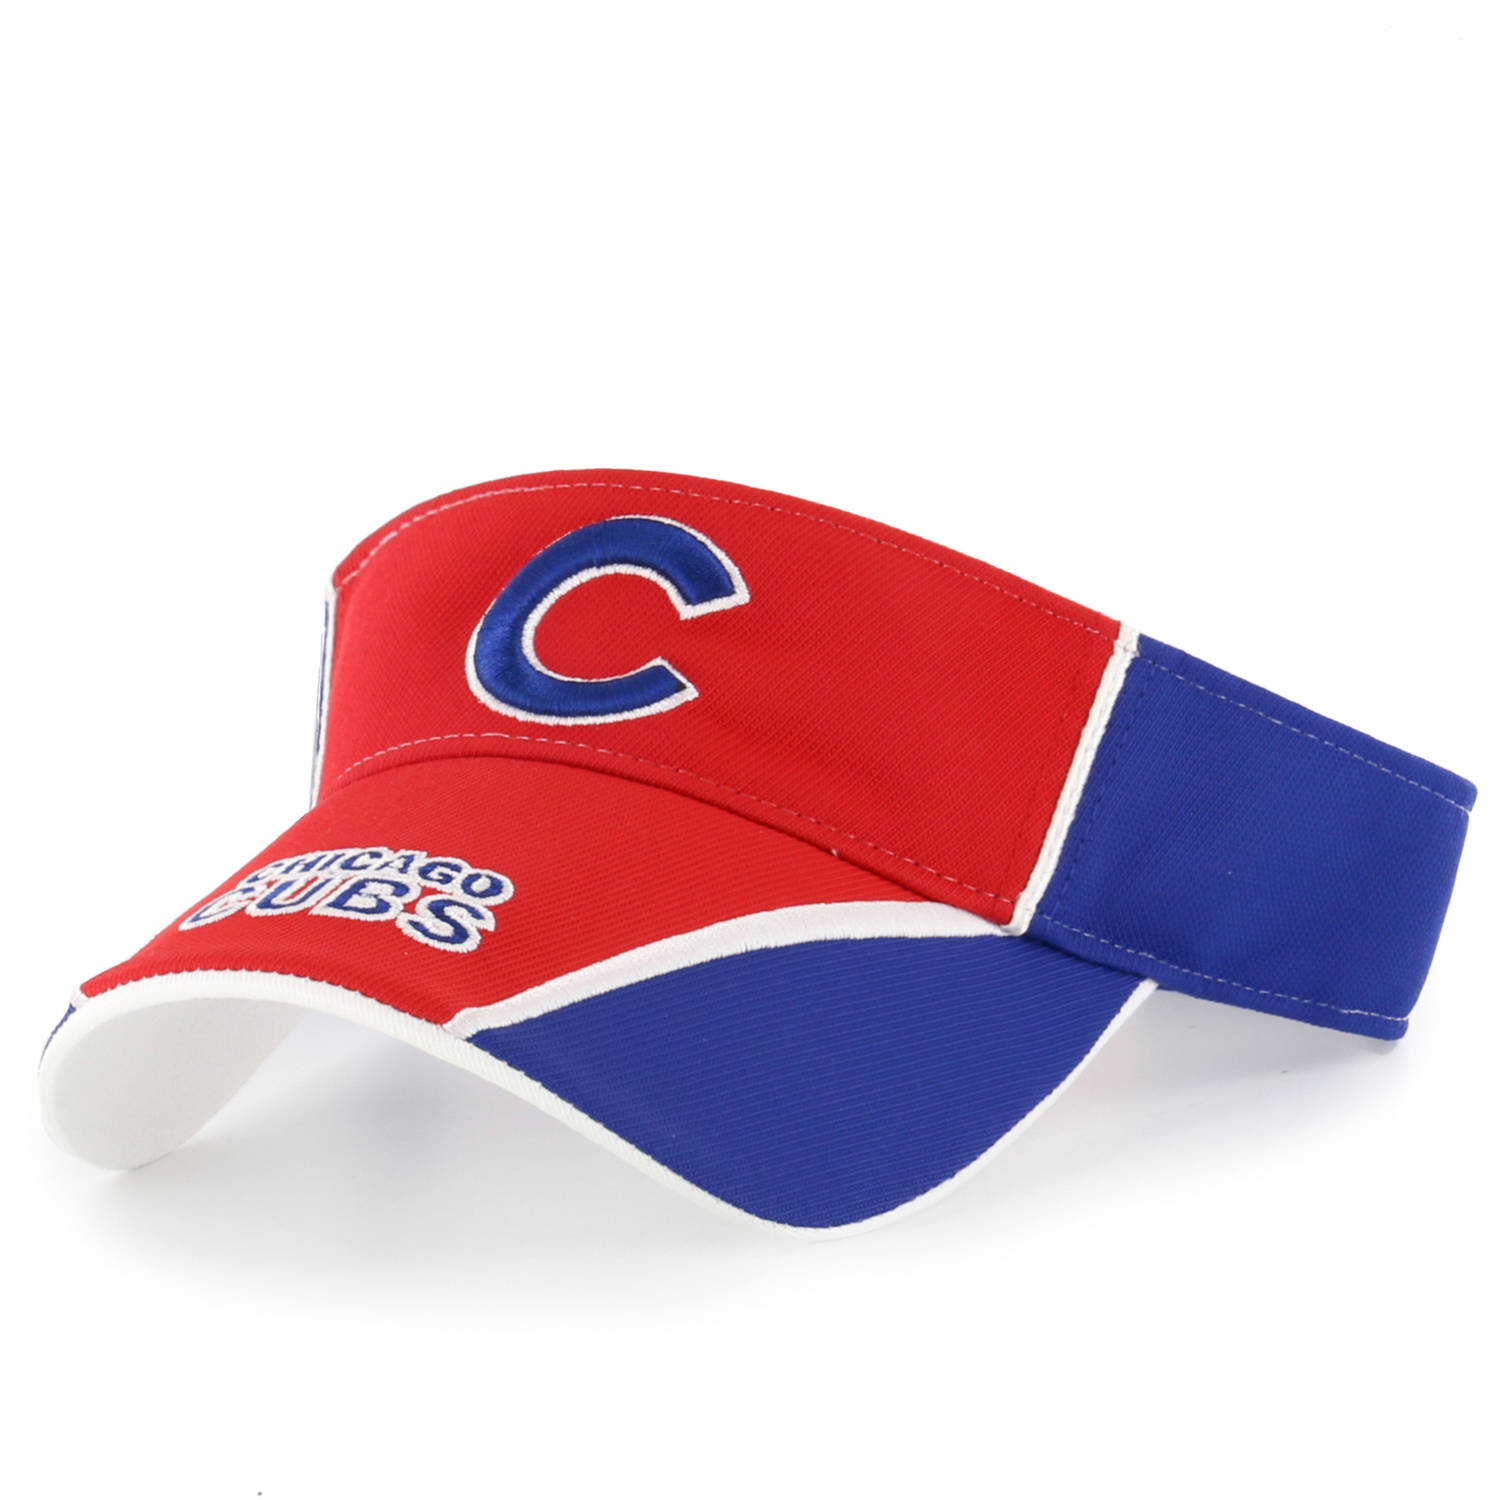 MLB Chicago Cubs Segment Visor Adjustable Cap/Hat by Fan Favorite